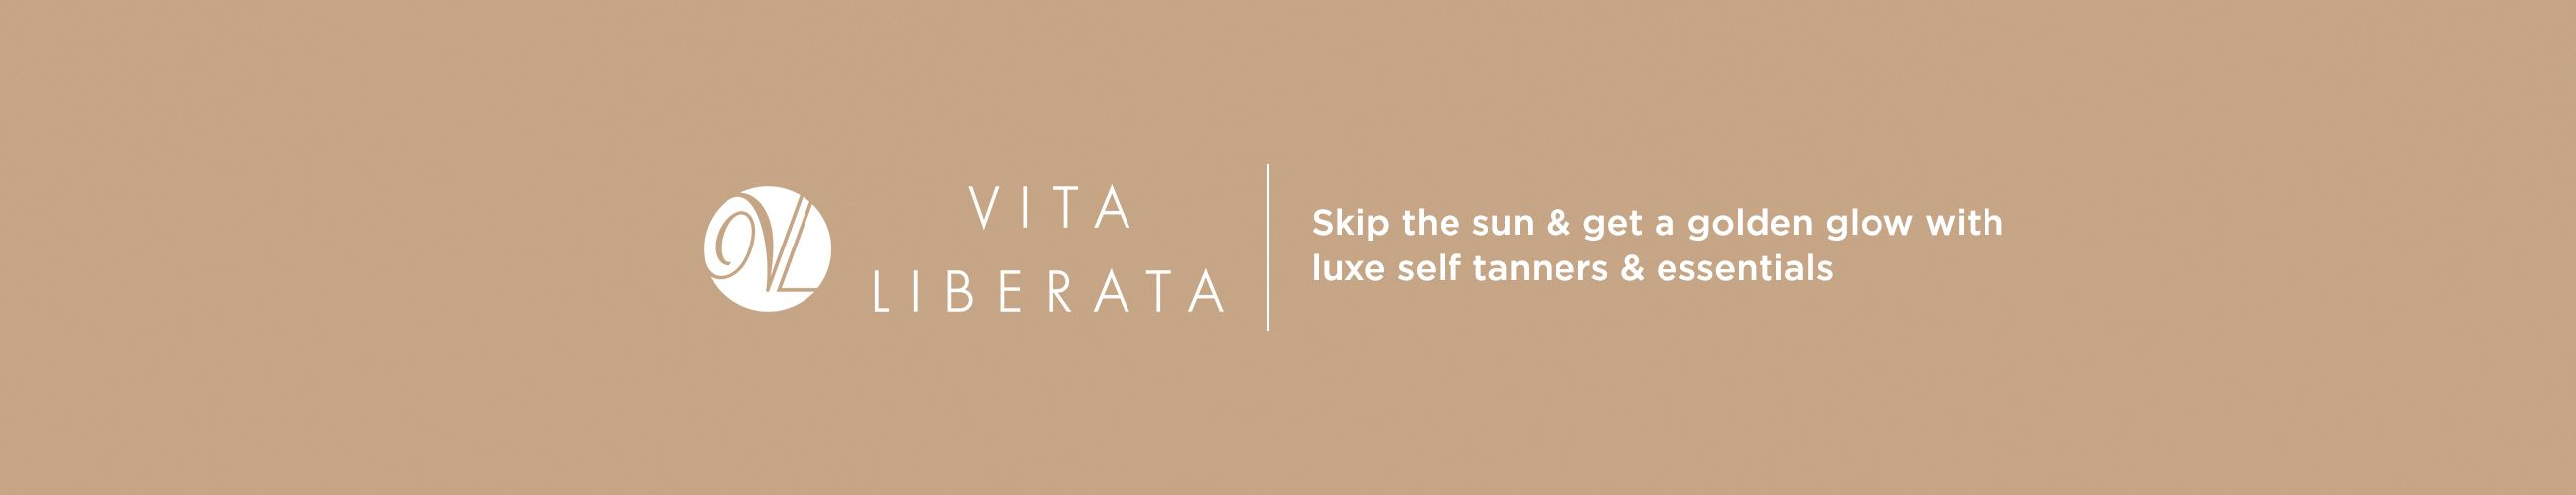 Vita Liberata - Skip the sun & get a golden glow with luxe self tanners & essentials